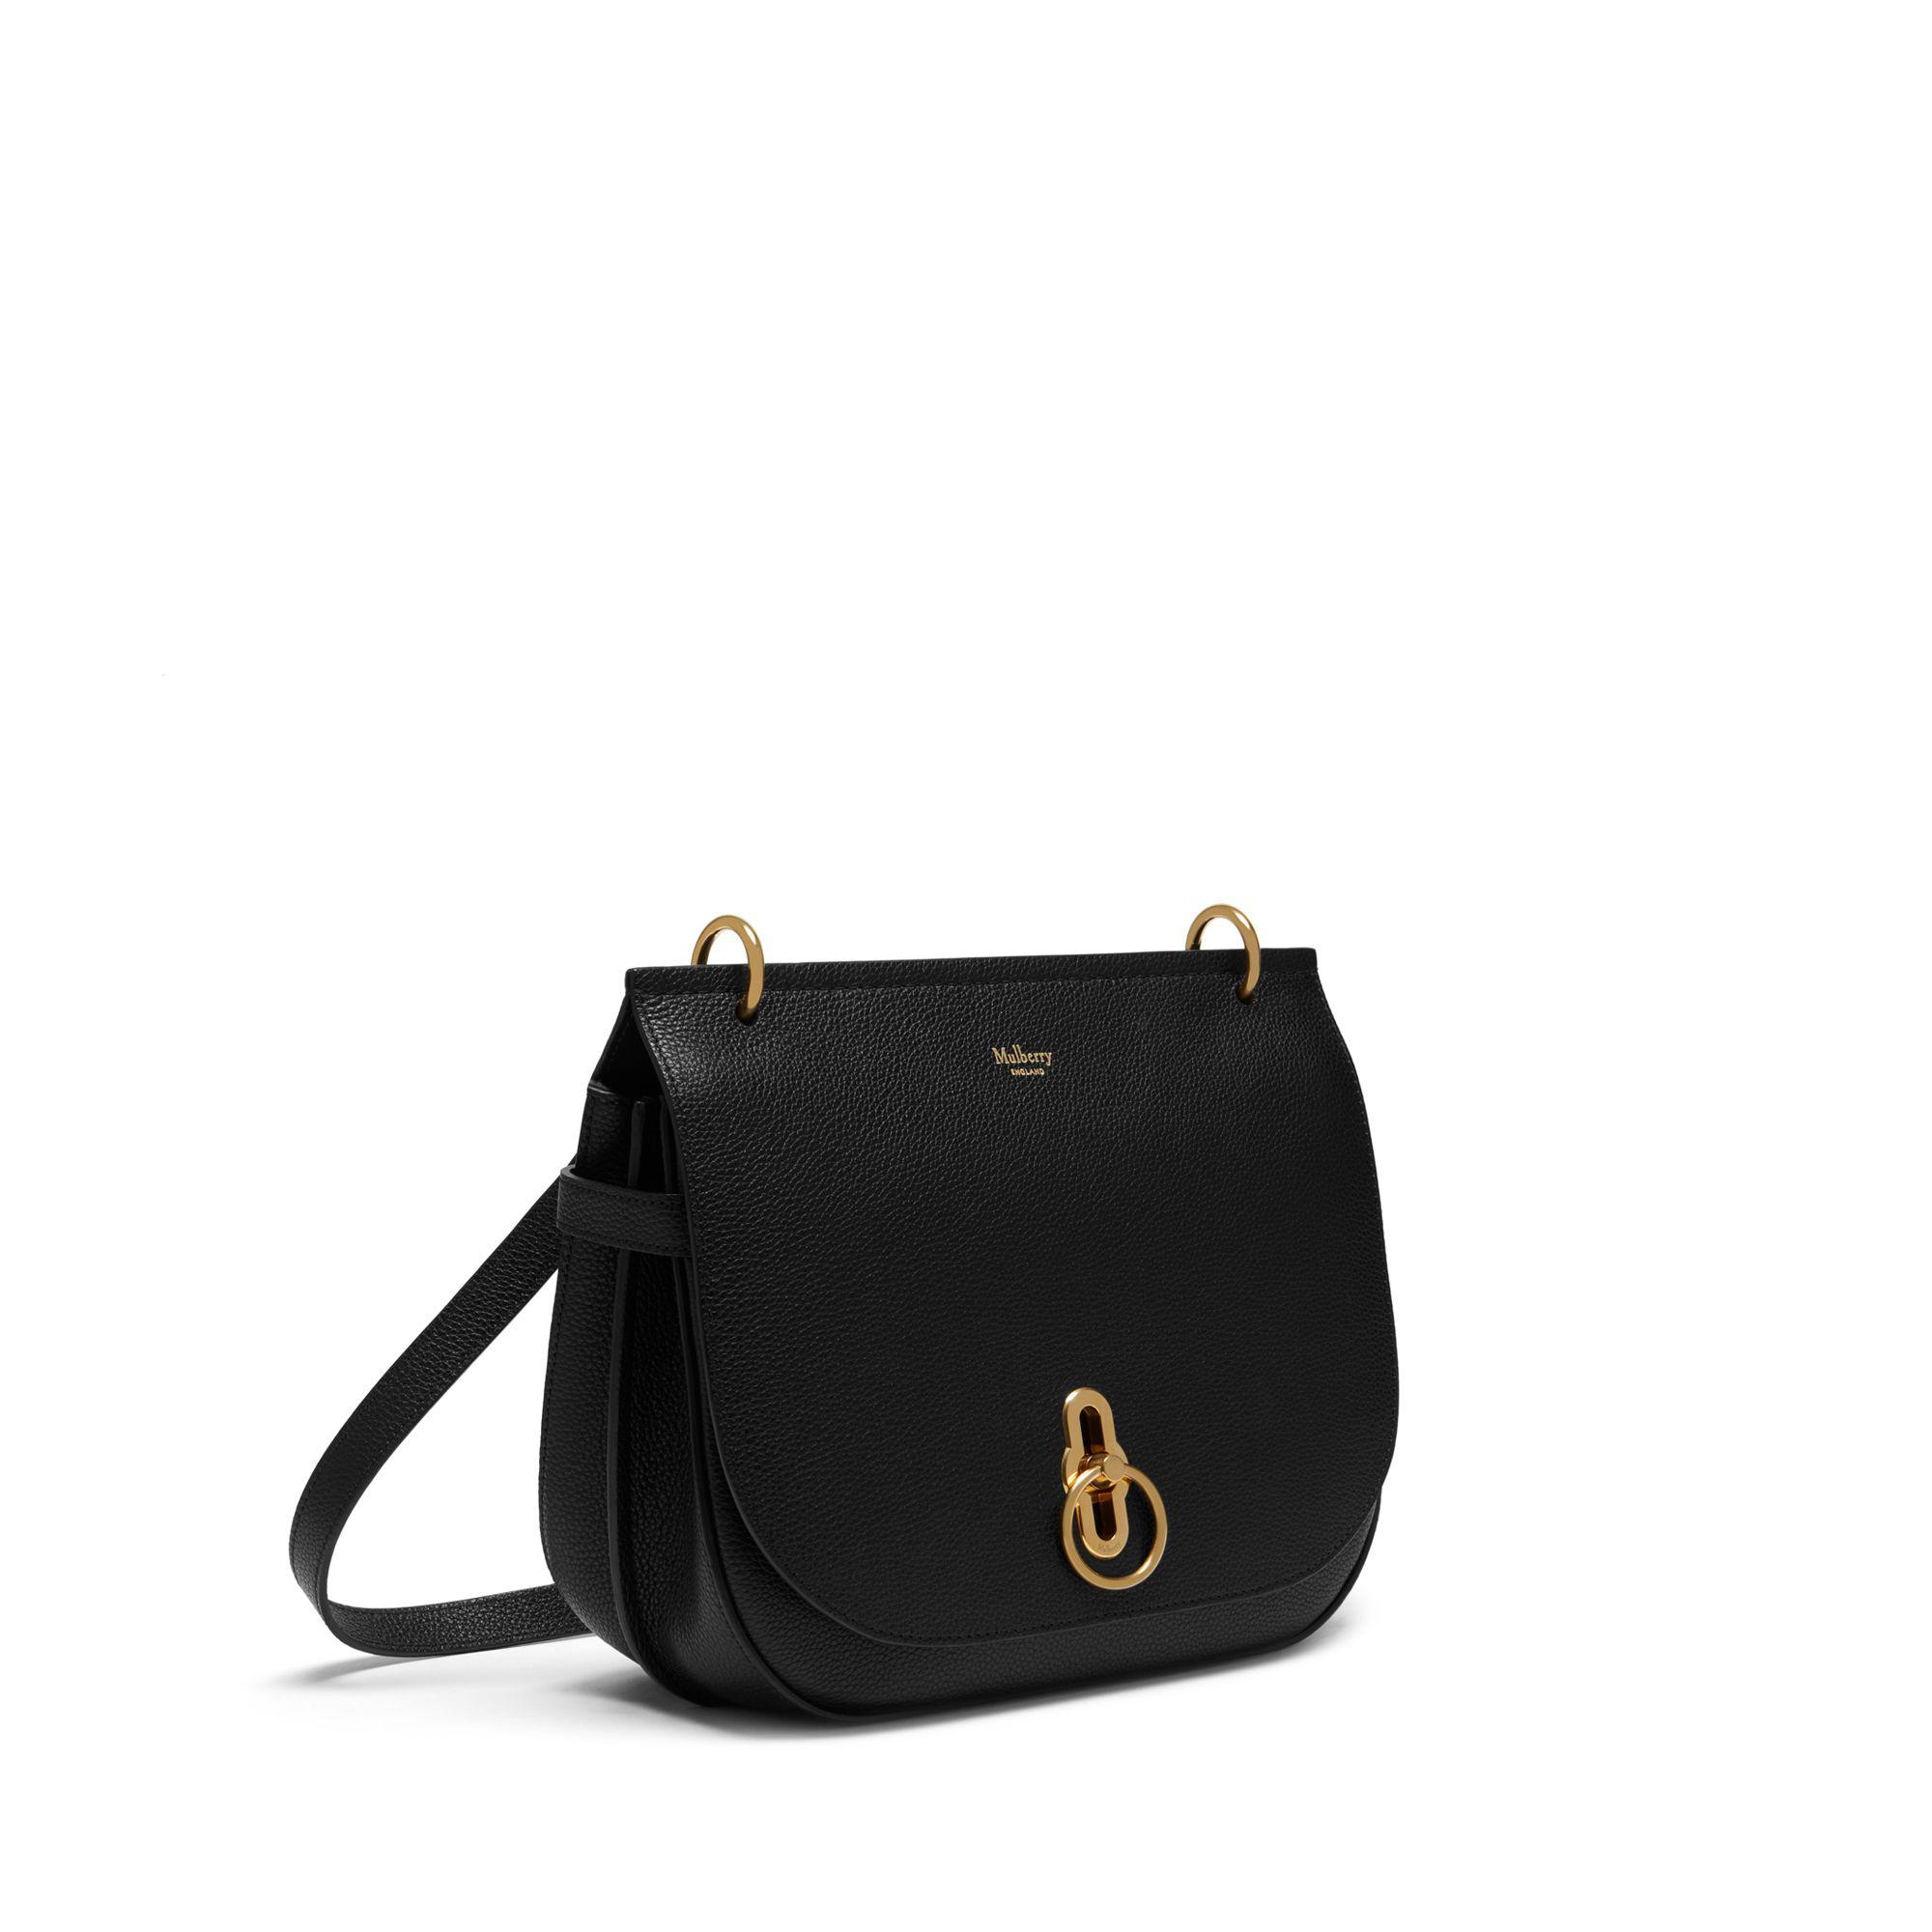 Mulberry - Amberley Satchel In Black Small Classic Grain - Lyst. View  fullscreen 8011c24dcd3d2